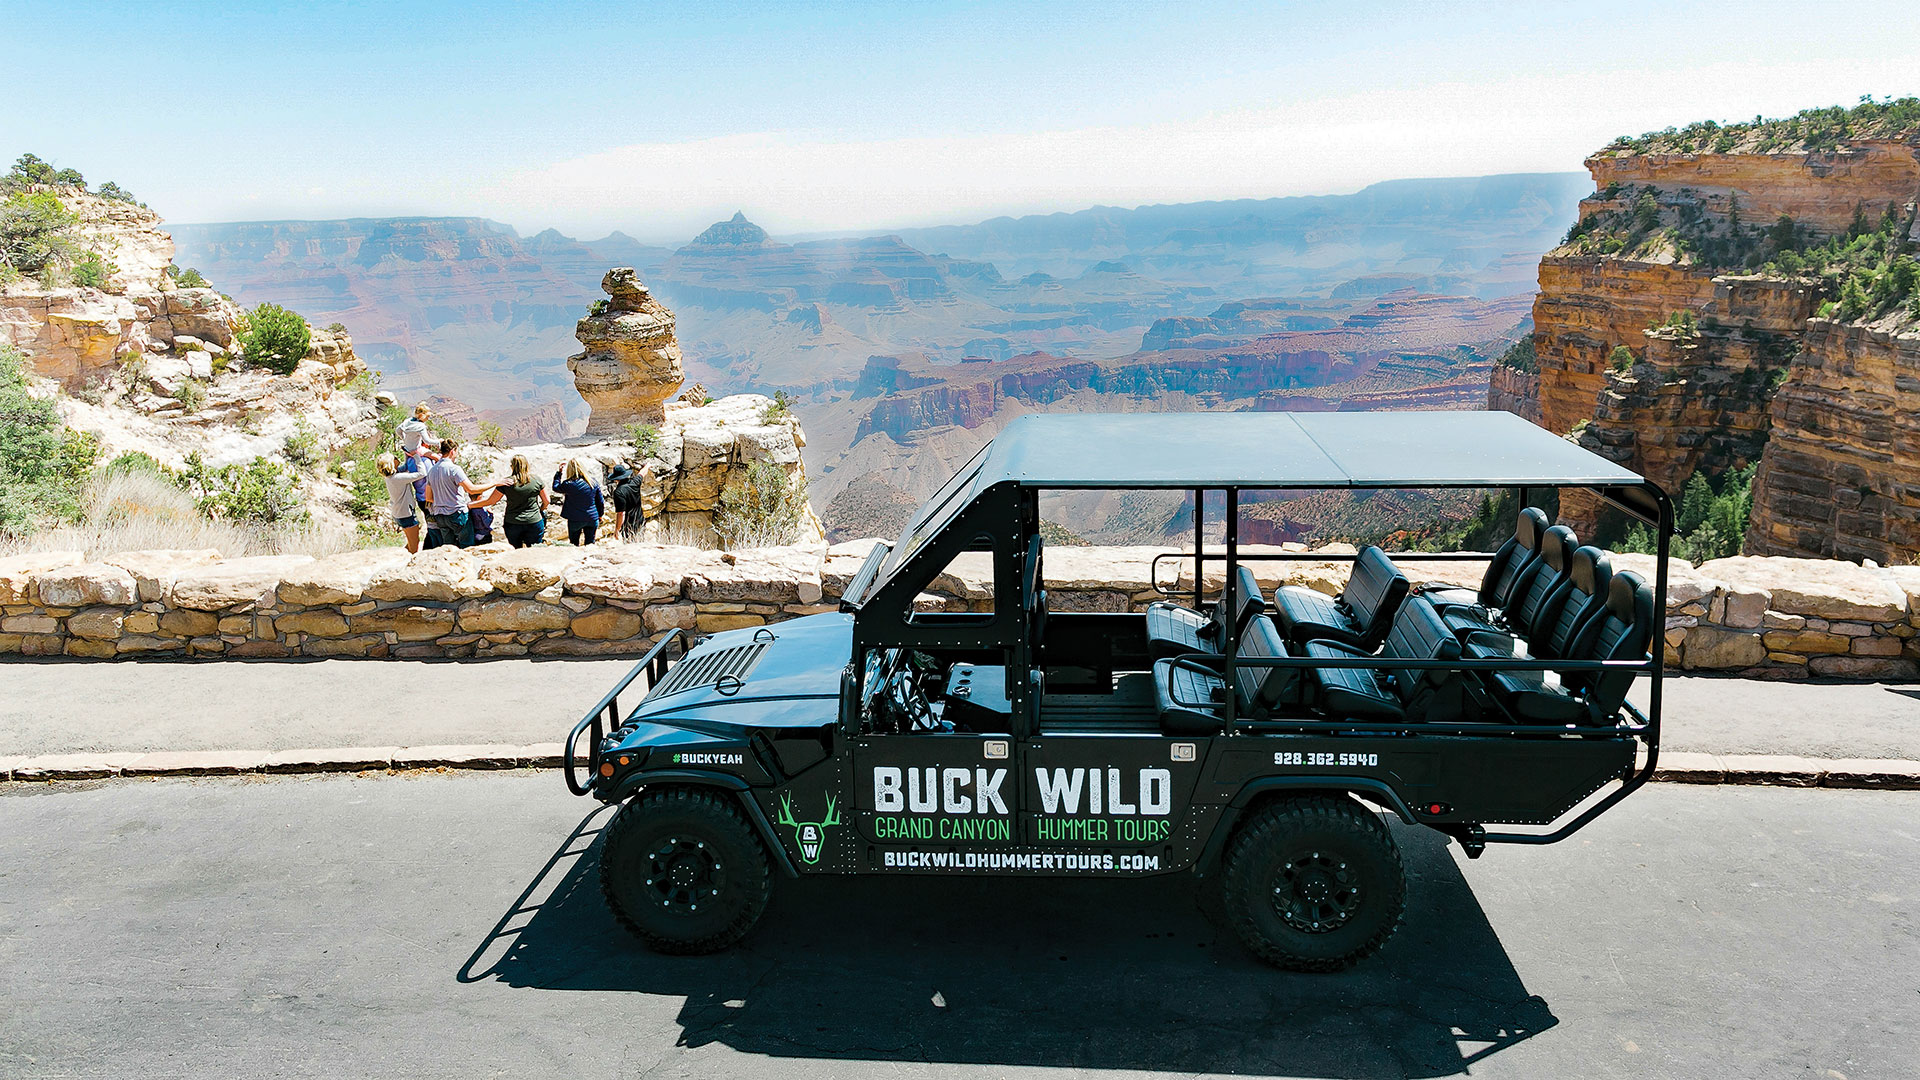 A Hummer vehicle parked while passengers sightsee at the Grand Canyon.